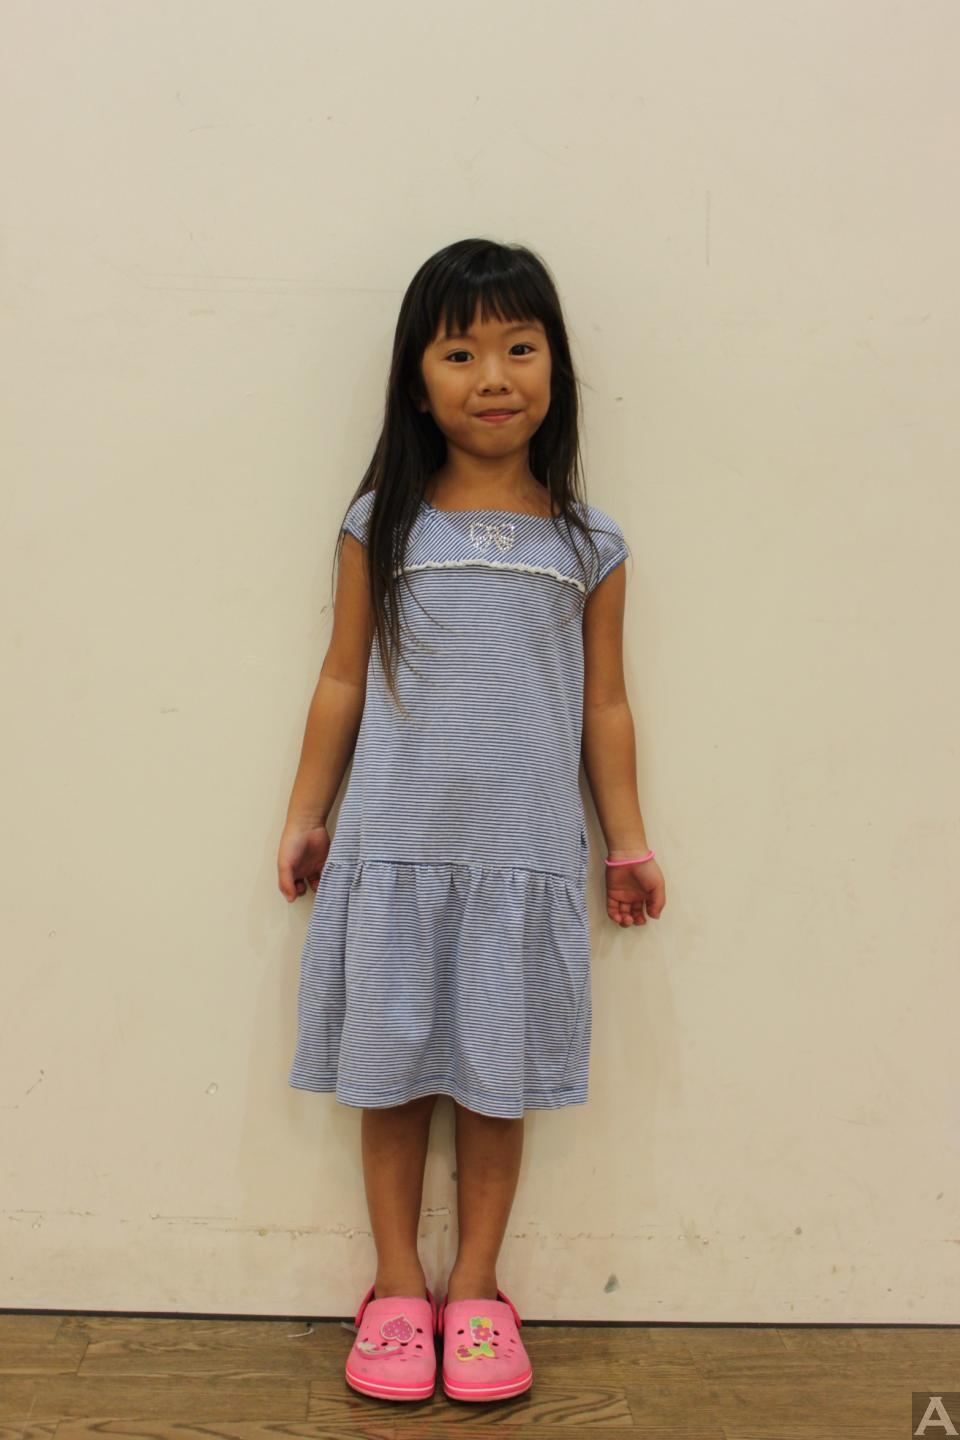 Tokyo Model Model Agency Acqua Models  Half Japanese  Asian  kids Ayune